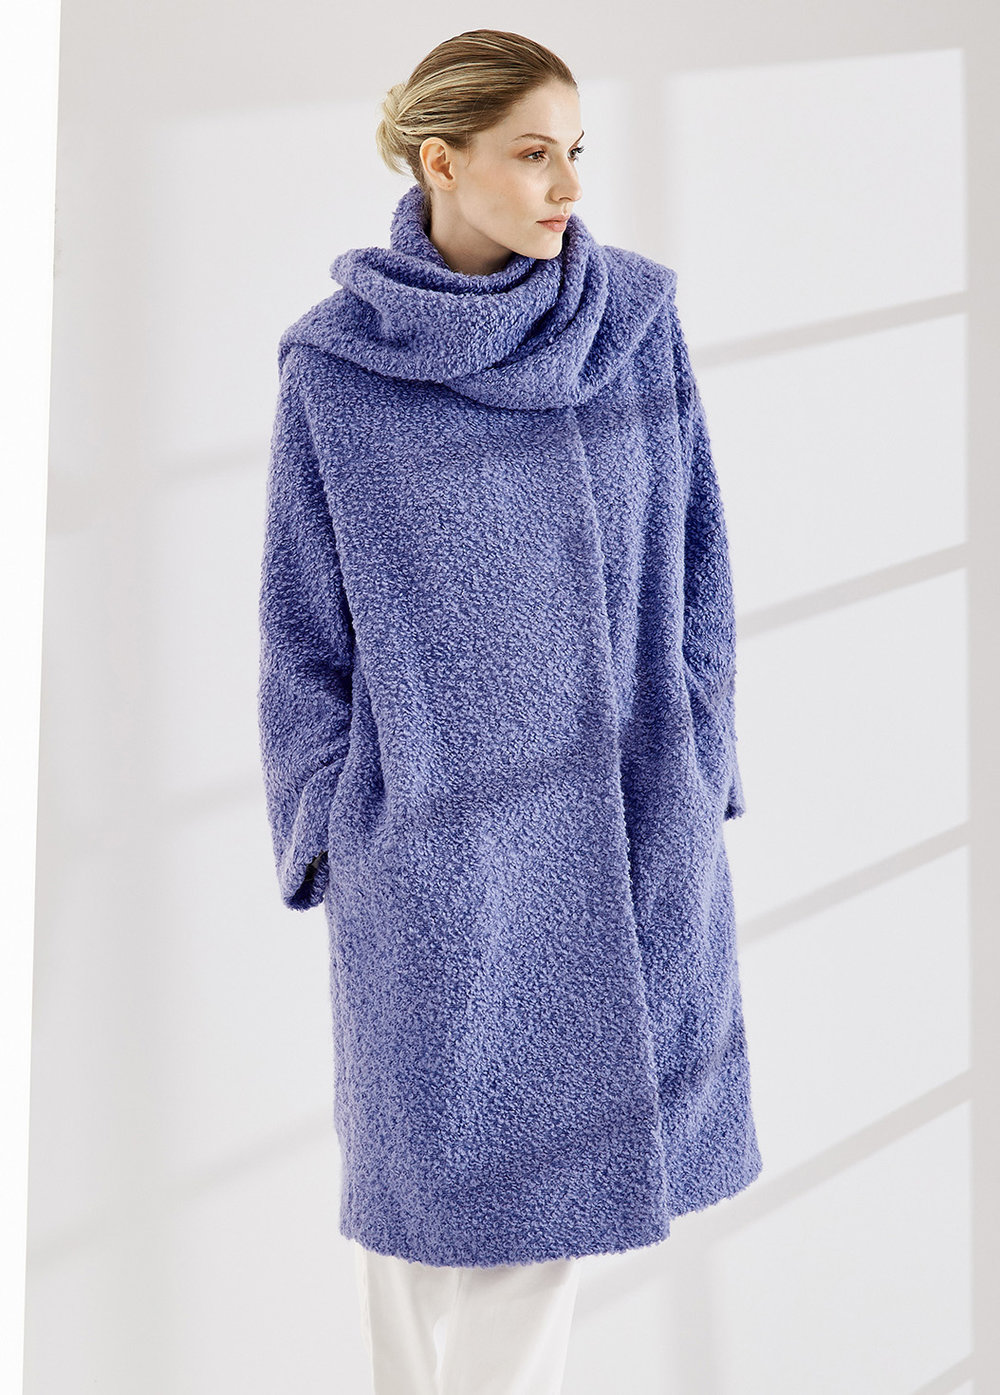 COAT ORNELLA AT-347   Colors:  boucle periwinkle,  mandarine, gray  Sizes: XS, S, M, L, XL